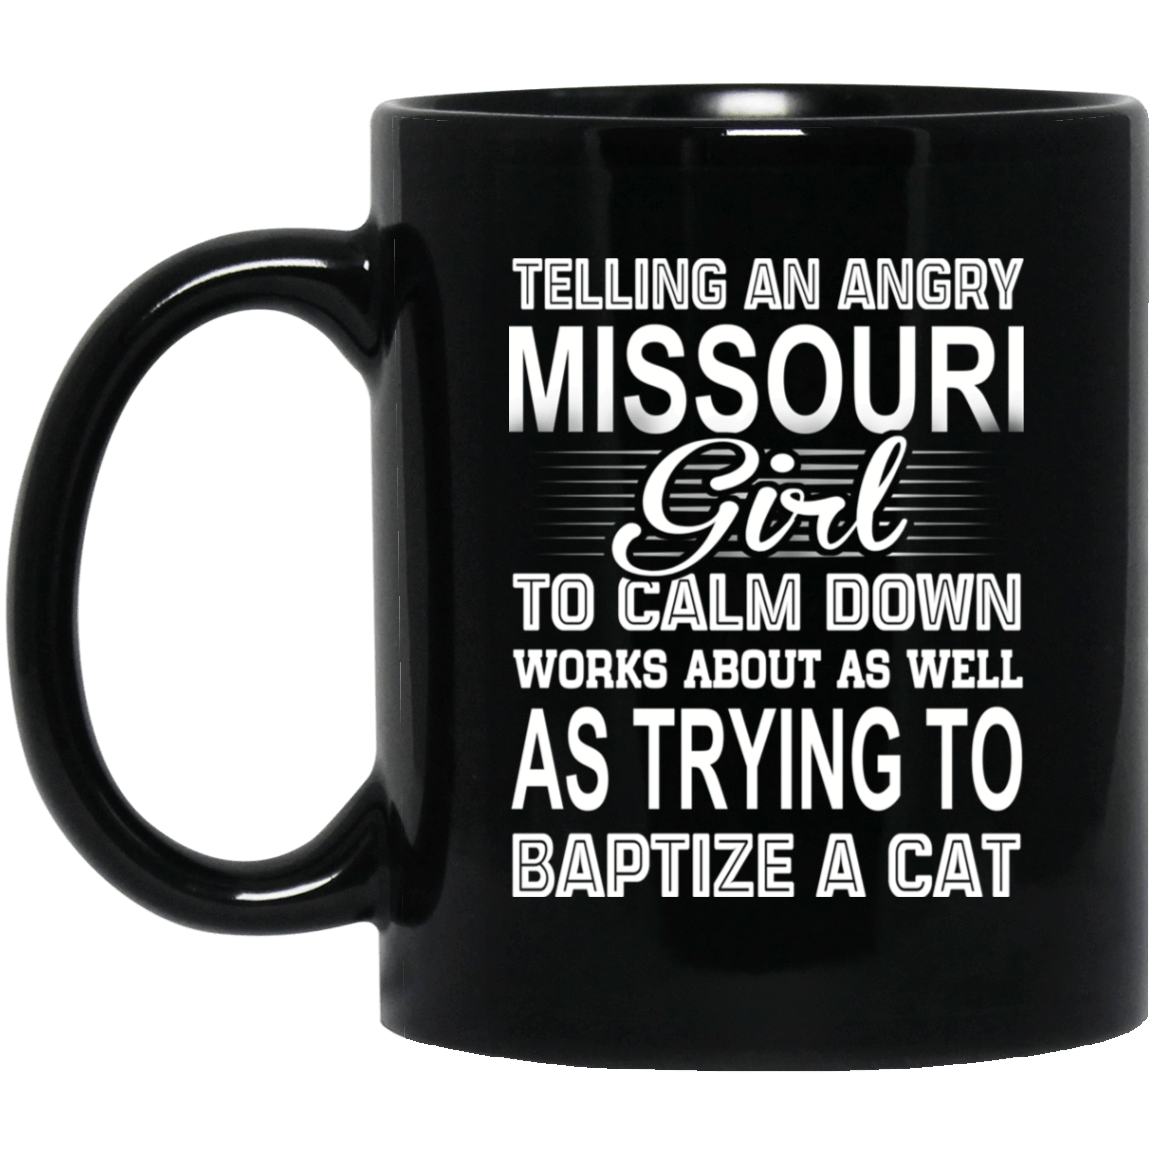 Telling An Angry Missouri Girl To Calm Down Works About As Well As Trying To Baptize A Cat Mug 1065-10181-76151627-49307 - Tee Ript